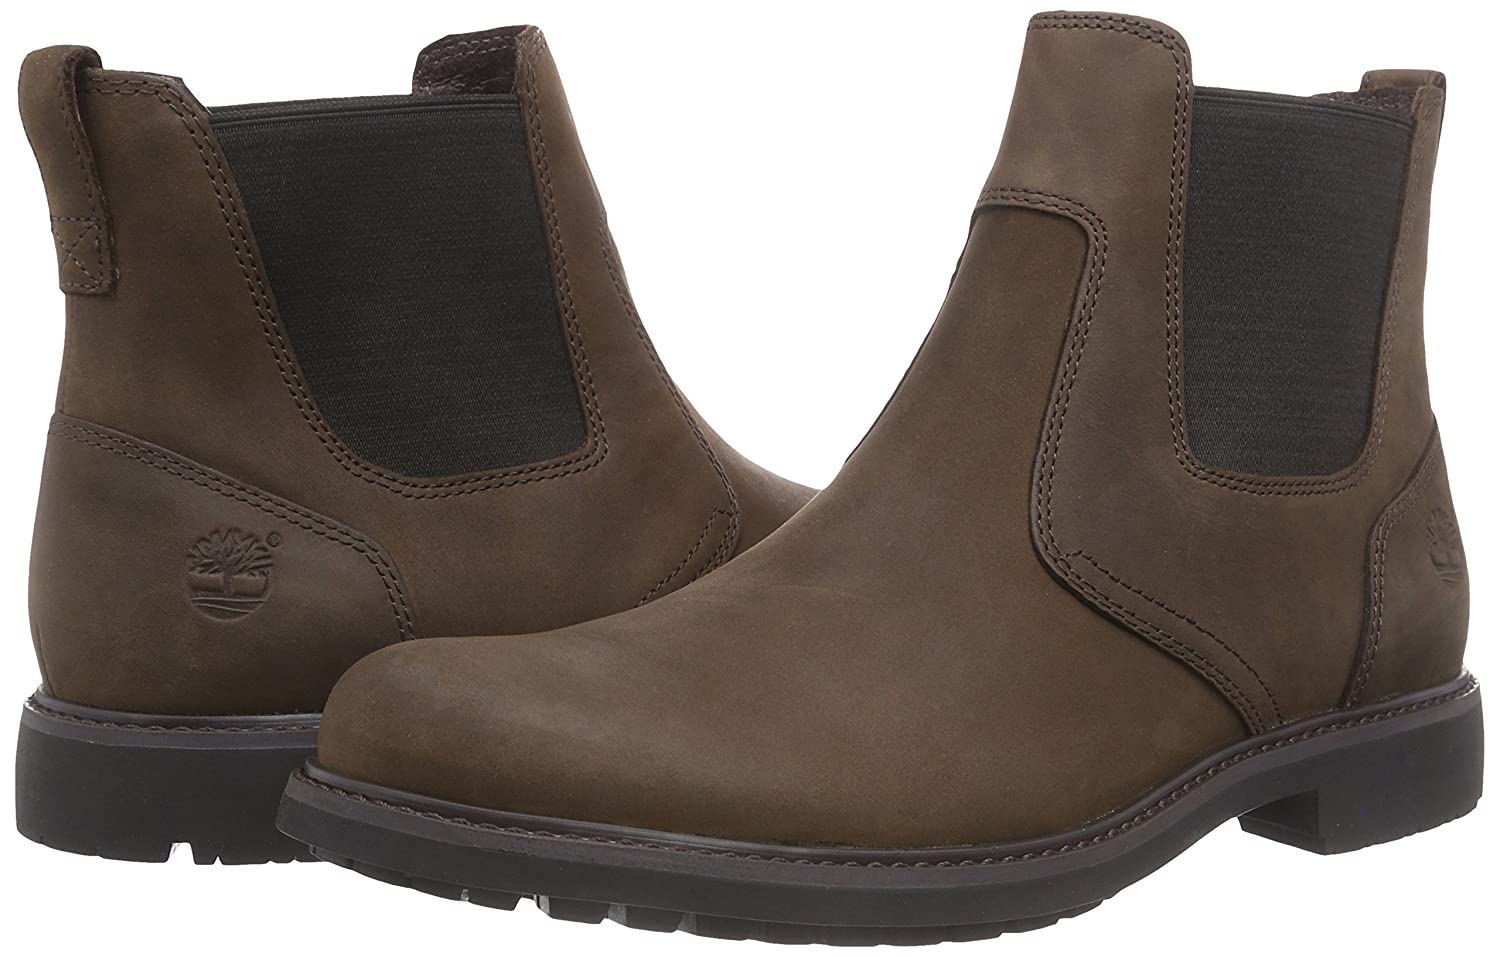 c5d0899238e Timberland Stormbuck Pull-On, Men's Chelsea Boots